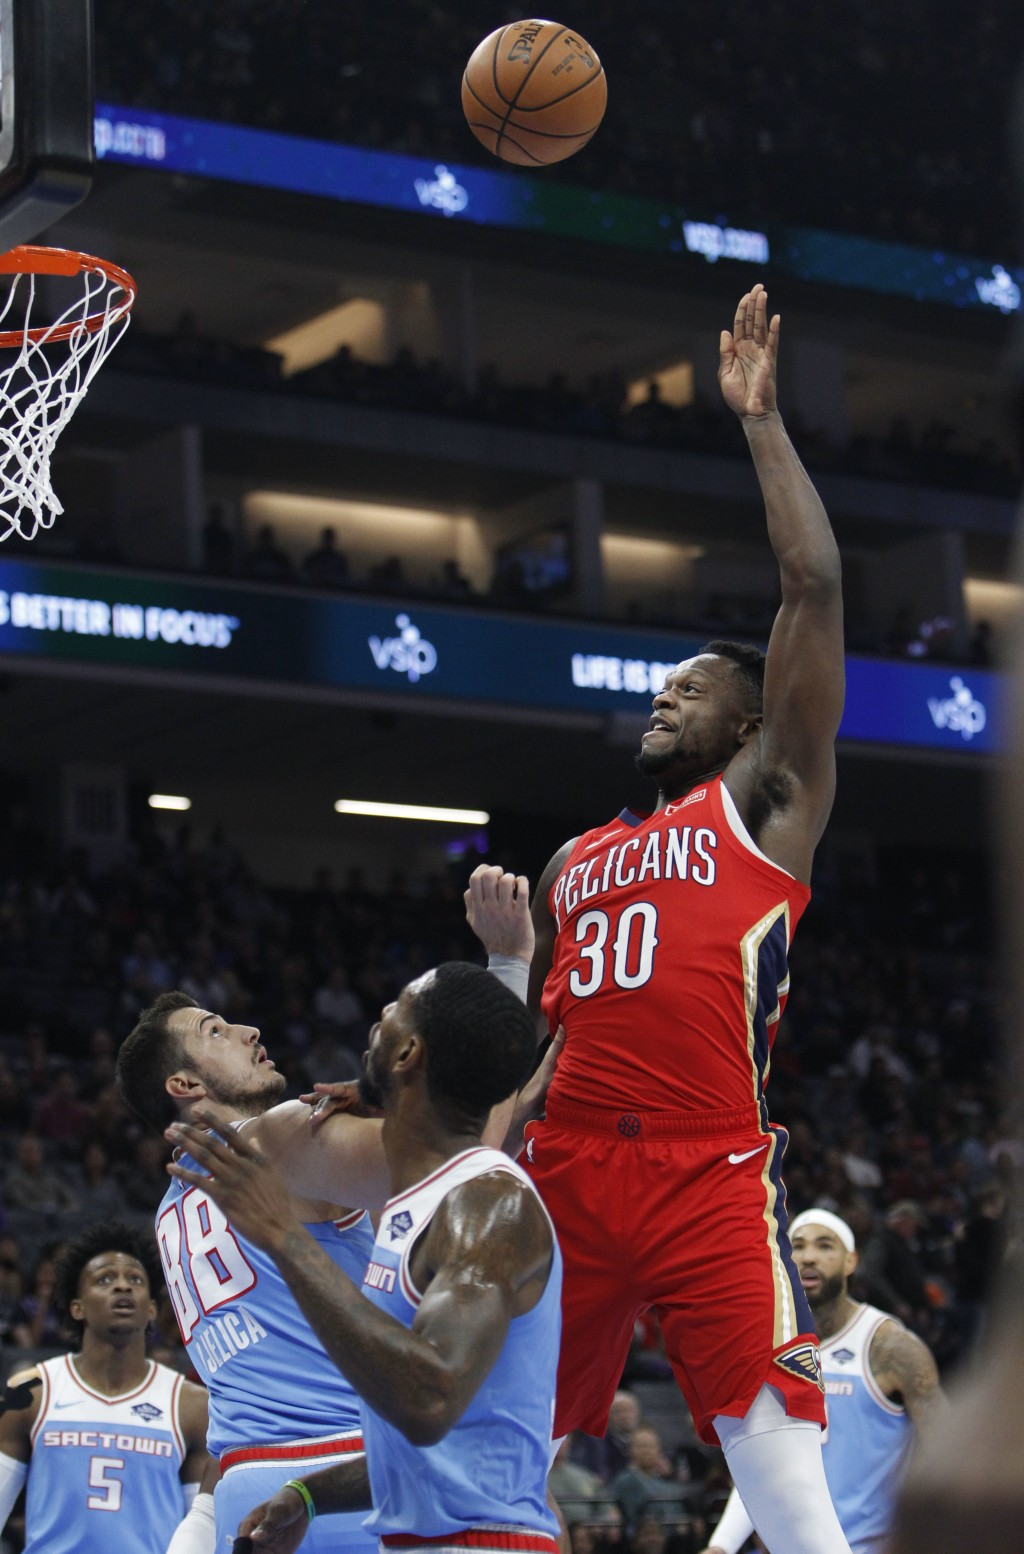 New Orleans Pelicans forward Julius Randle (30) shoots over Sacramento Kings forward Nemanja Bjelica (88) during the first half of an NBA basketball g